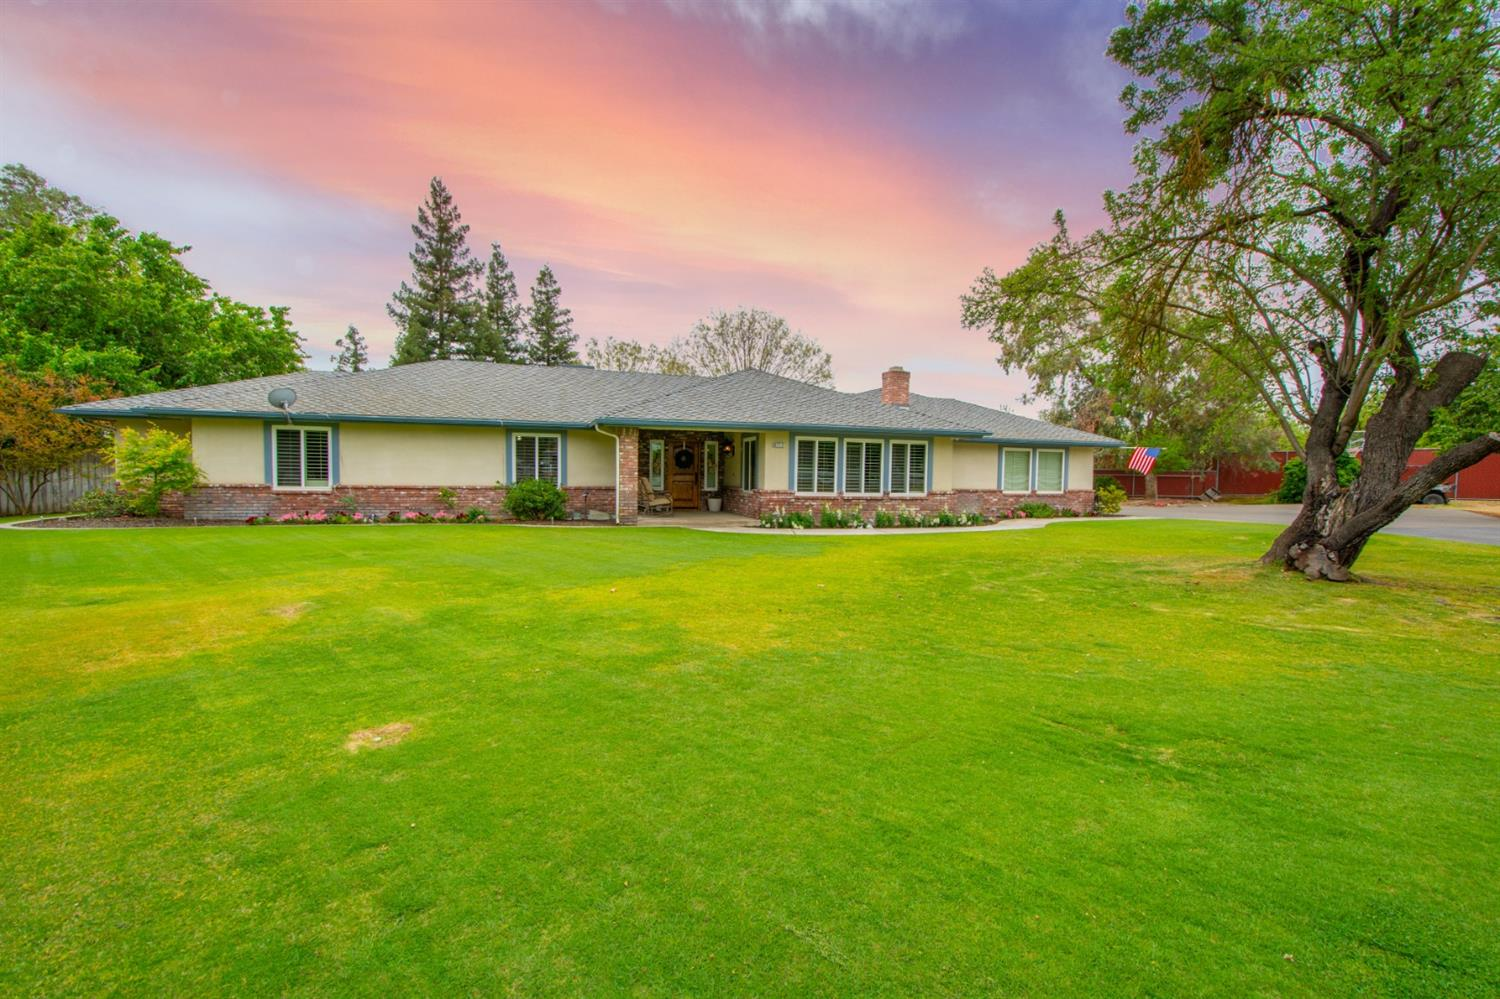 Here is your chance to own a piece of upscale country living in Northwest Fresno. Situated on a 2.12 acre lot, this 2700 + square foot custom ranch style home is located in a well-established, quiet, neighborhood. Tucked away at the end of the cul-de-sac you will find what is sure to be your family's new dream home. Driving down your long private driveway will help you escape after a long day at work. Surrounded by what feels like your own private park gives way to a 1200 square foot shop located in the rear of the property. The inside offers you 2 master suites suitable for large or multigenerational families as well as a custom chef's kitchen fit for an entertainer's dreams. For those hot Summer days when you aren't cooling off in the pool, there is a massive OWNED solar system capable of keeping your home nice and cool. Make your appointment today to see 6713 W Rialto Ave Fresno, CA 93723 to see the endless opportunity this home offers to make your family's dreams come true!